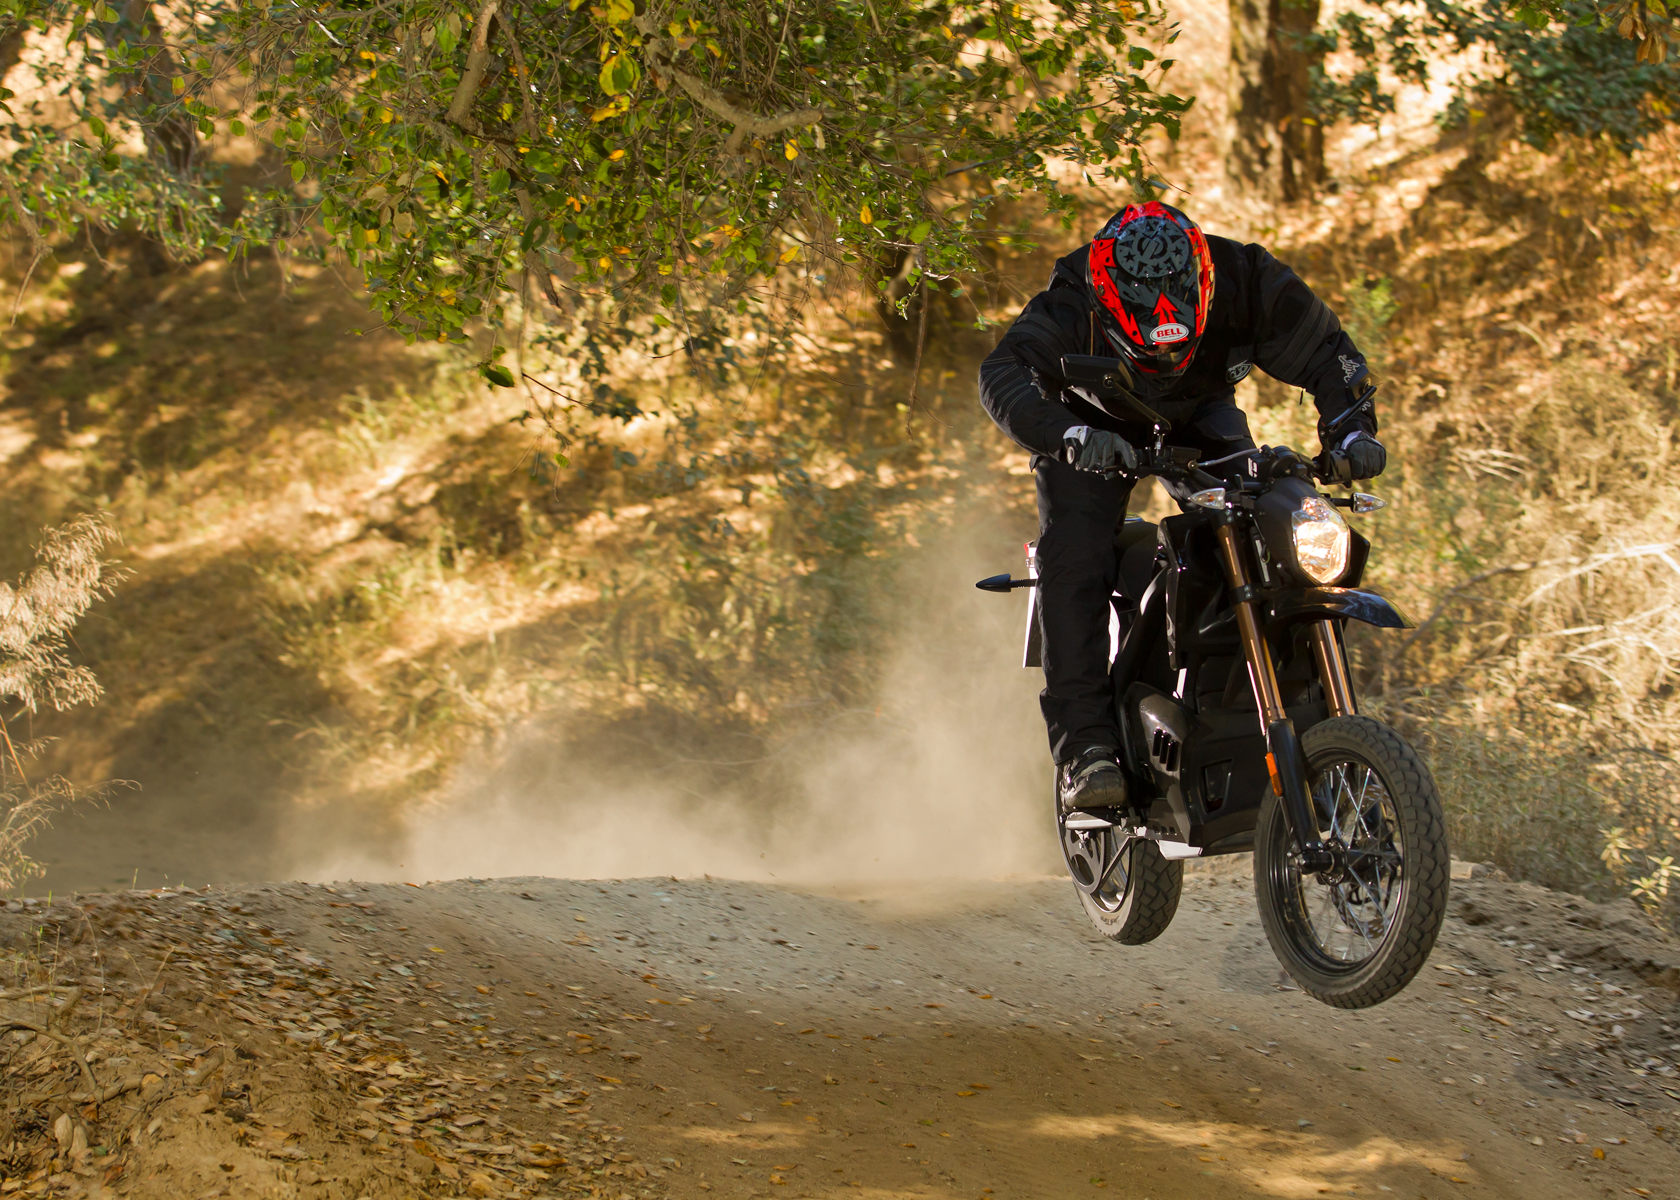 2012 Zero DS Electric Motorcycle: Charging Down a Dirt Road